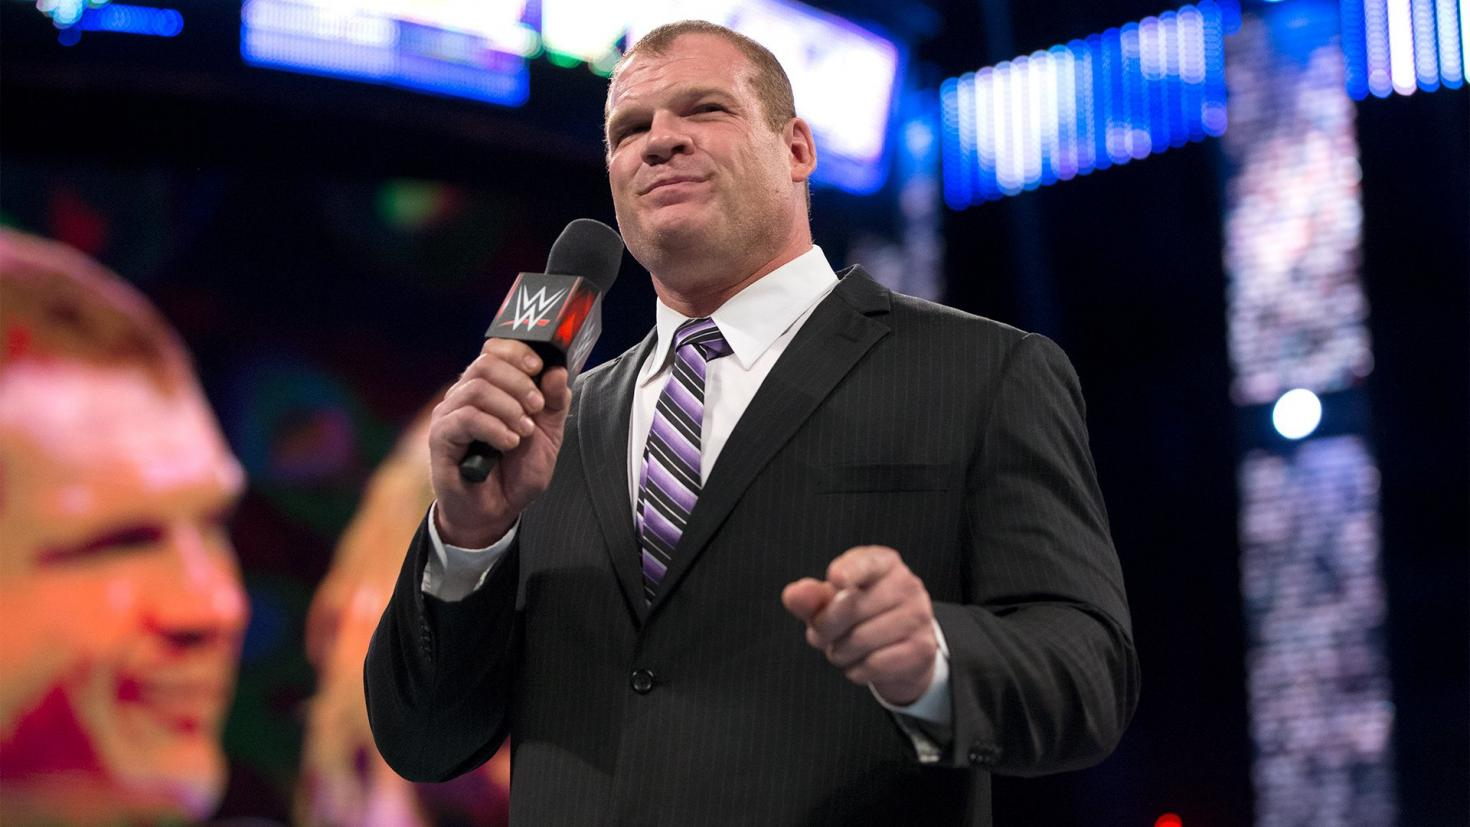 Remember Kane from WWE? He has just become mayor of Knox County, Tennessee